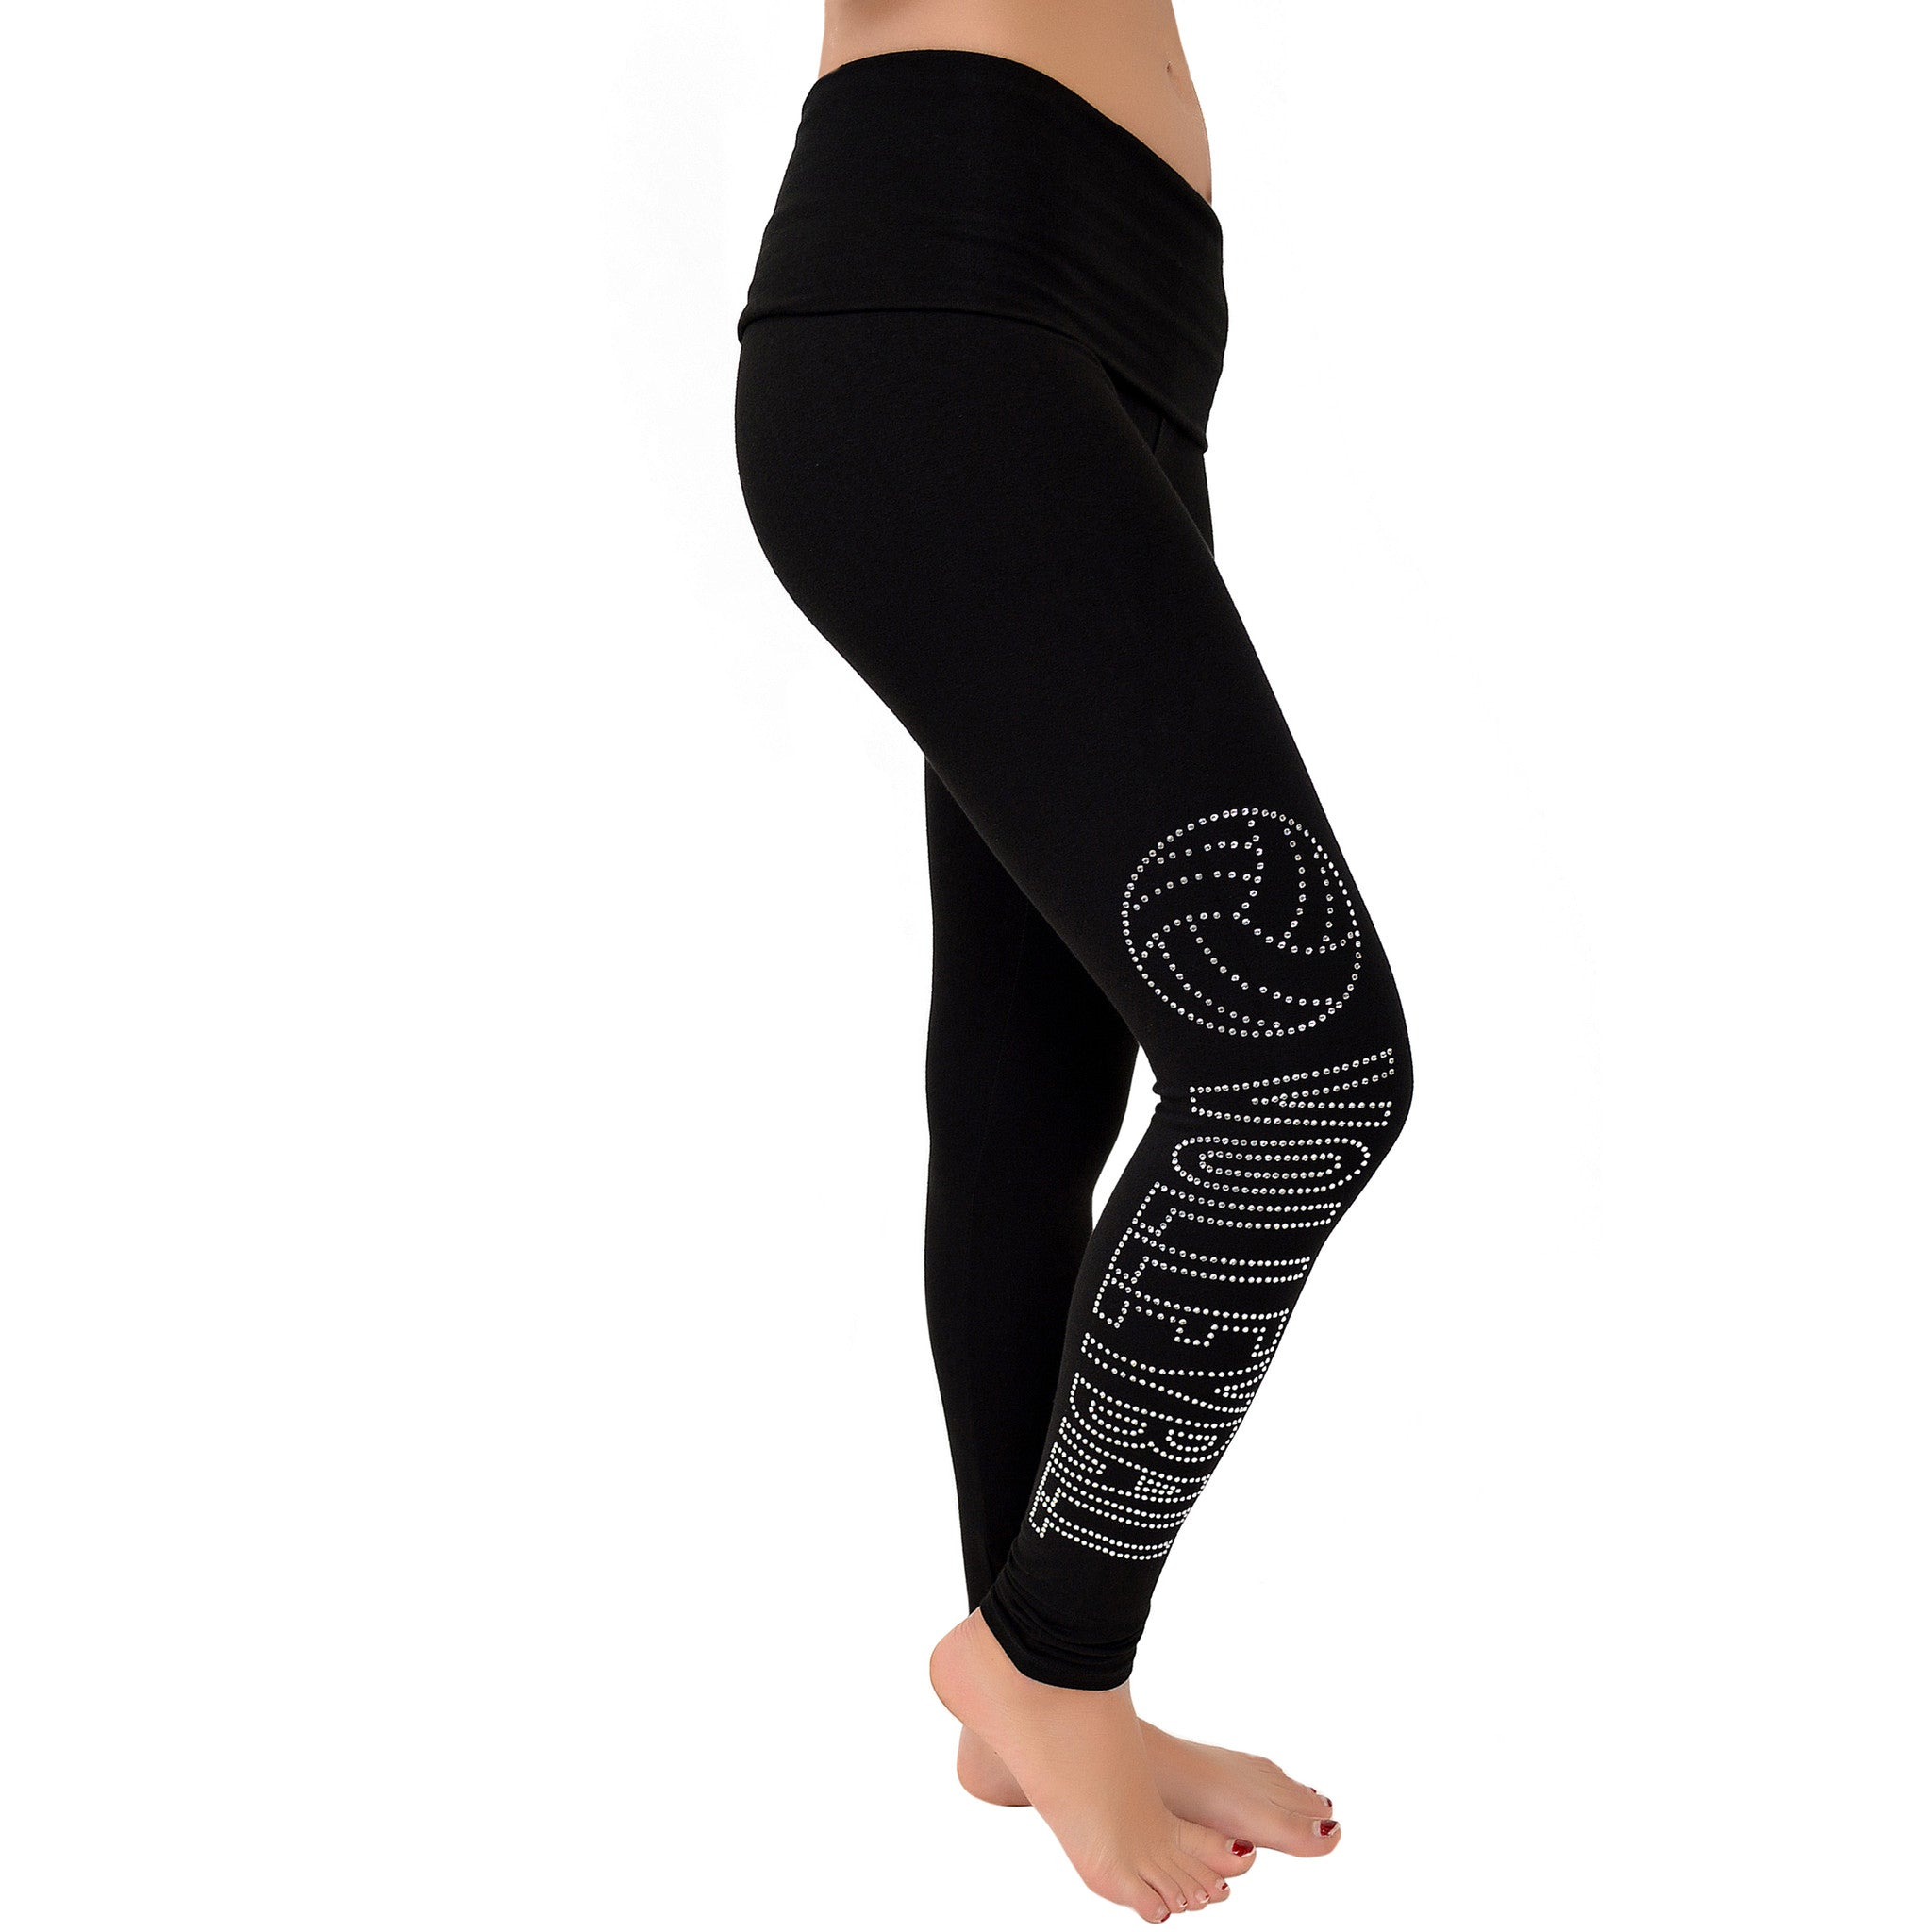 Women's Volleyball Rhinestone Foldover Cotton Leggings